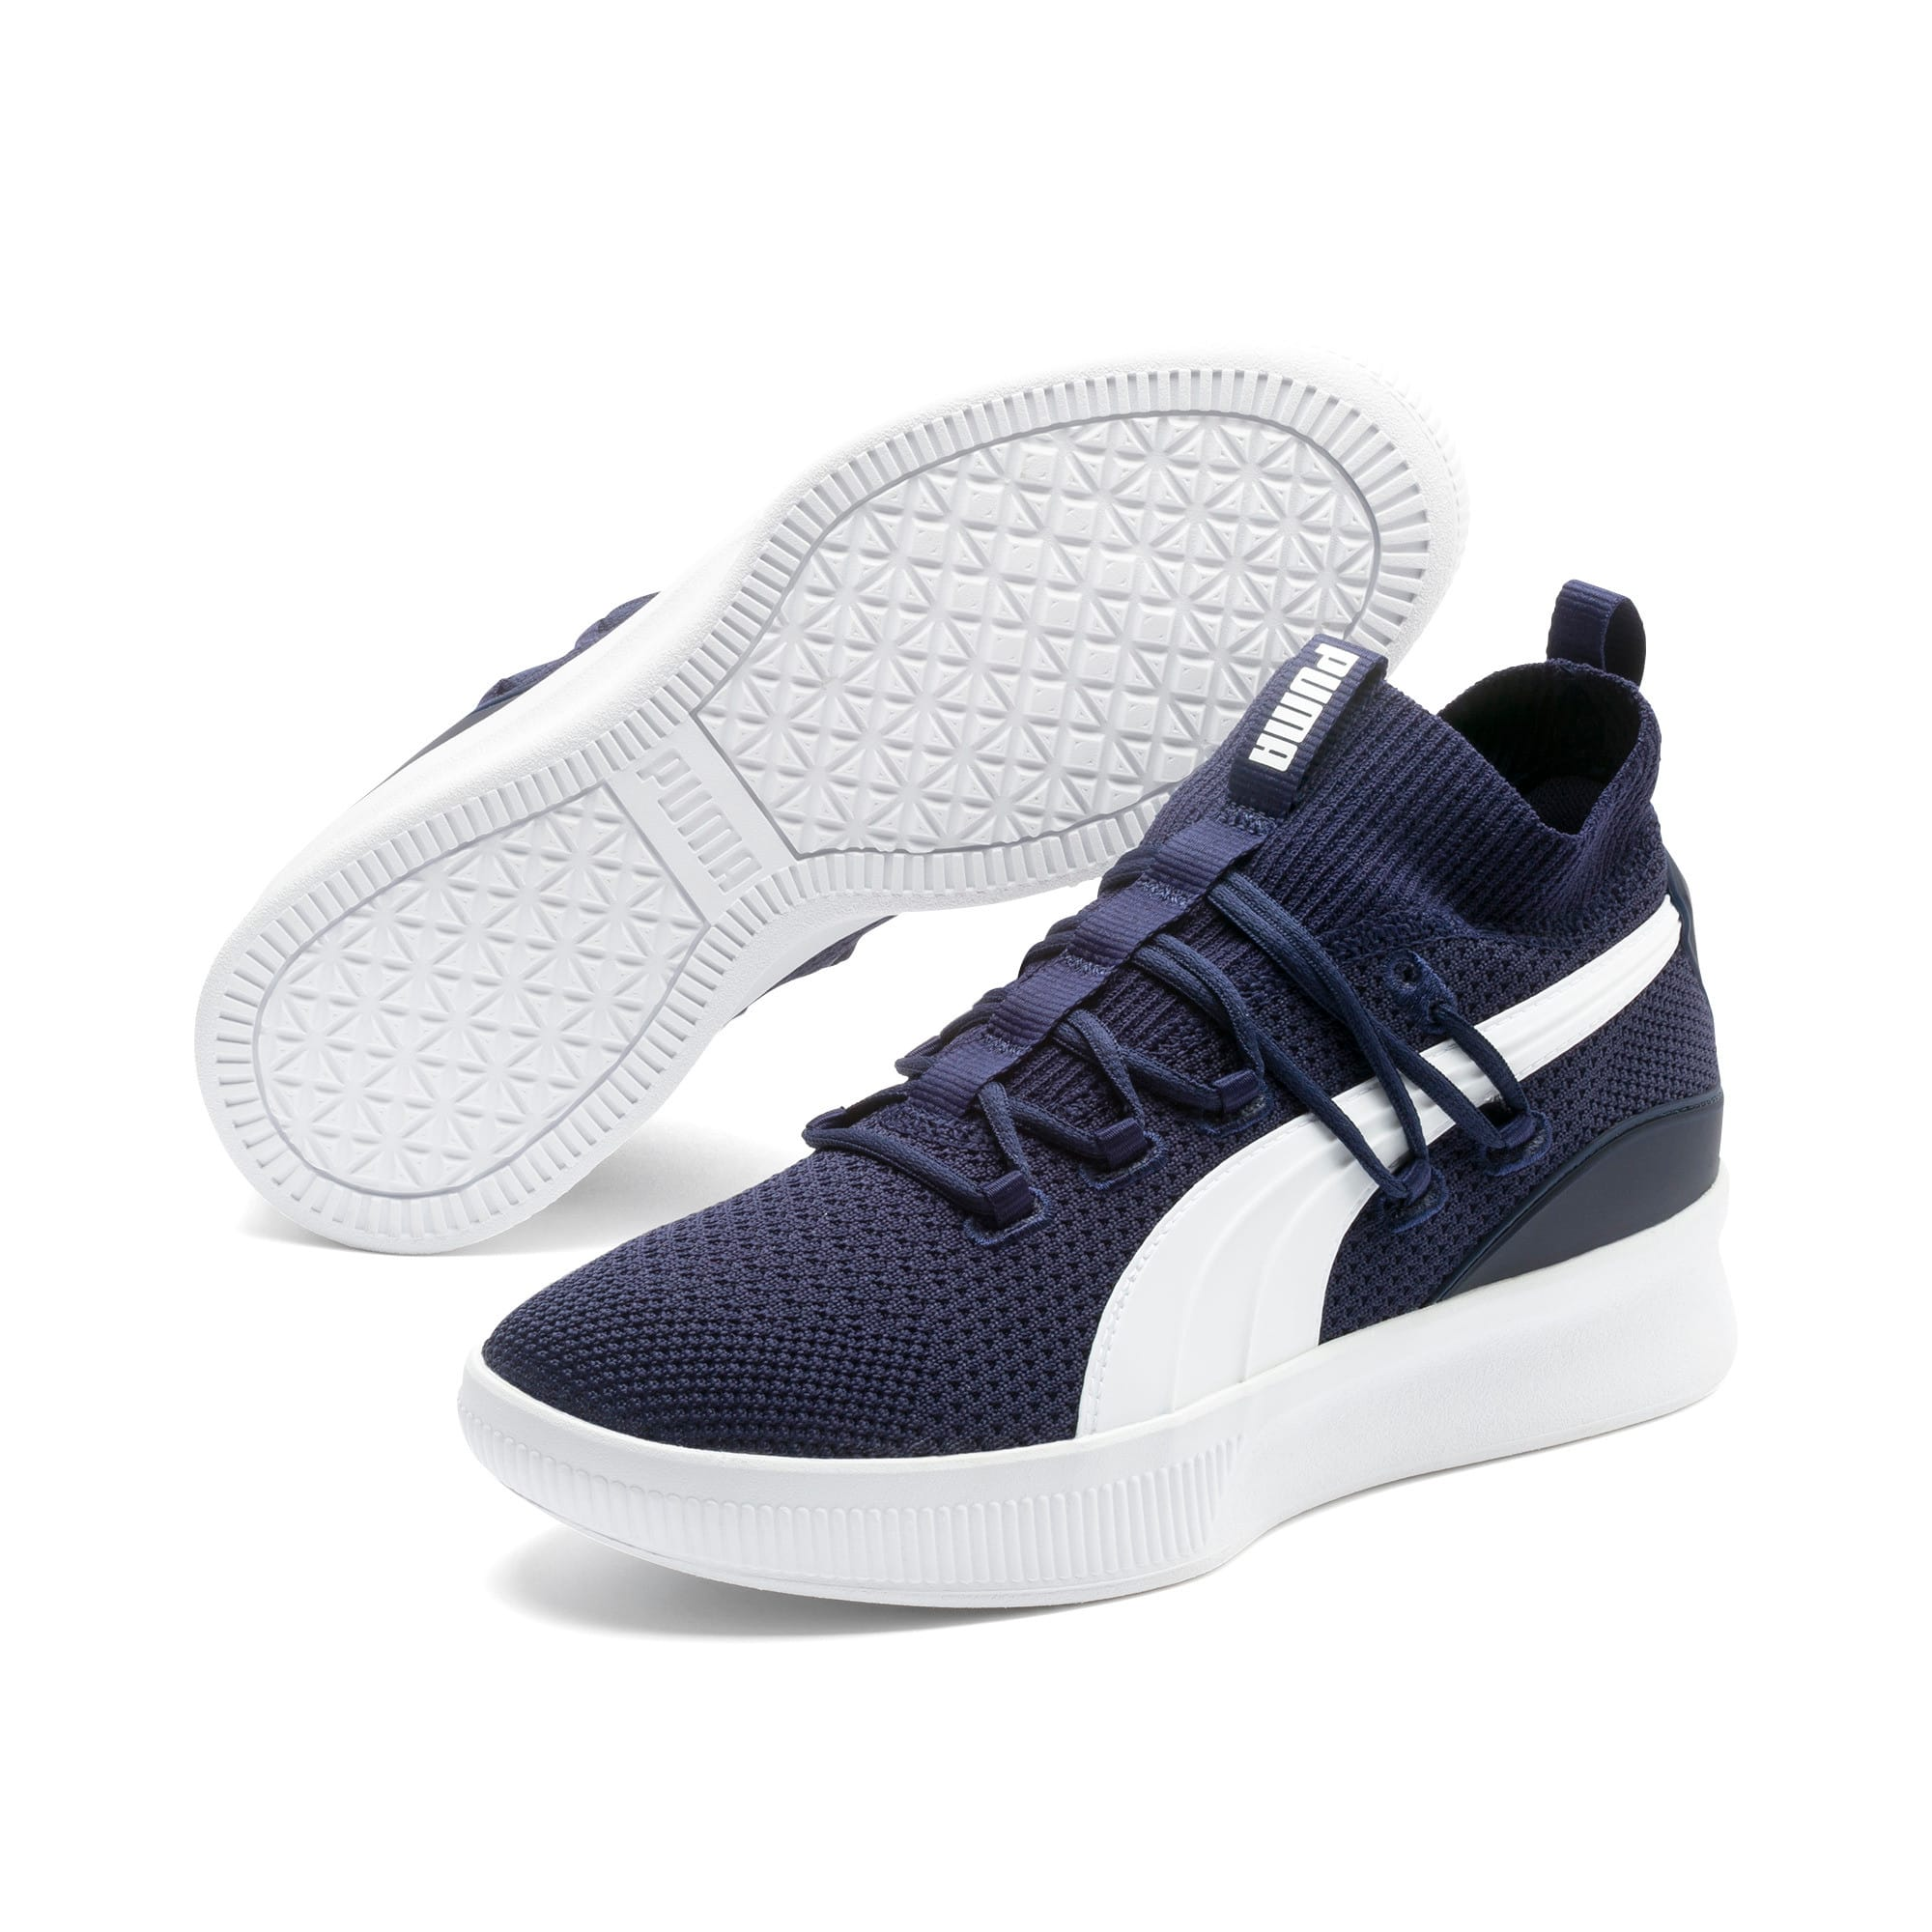 Thumbnail 2 of Clyde Court Core Basketball Shoes, Peacoat, medium